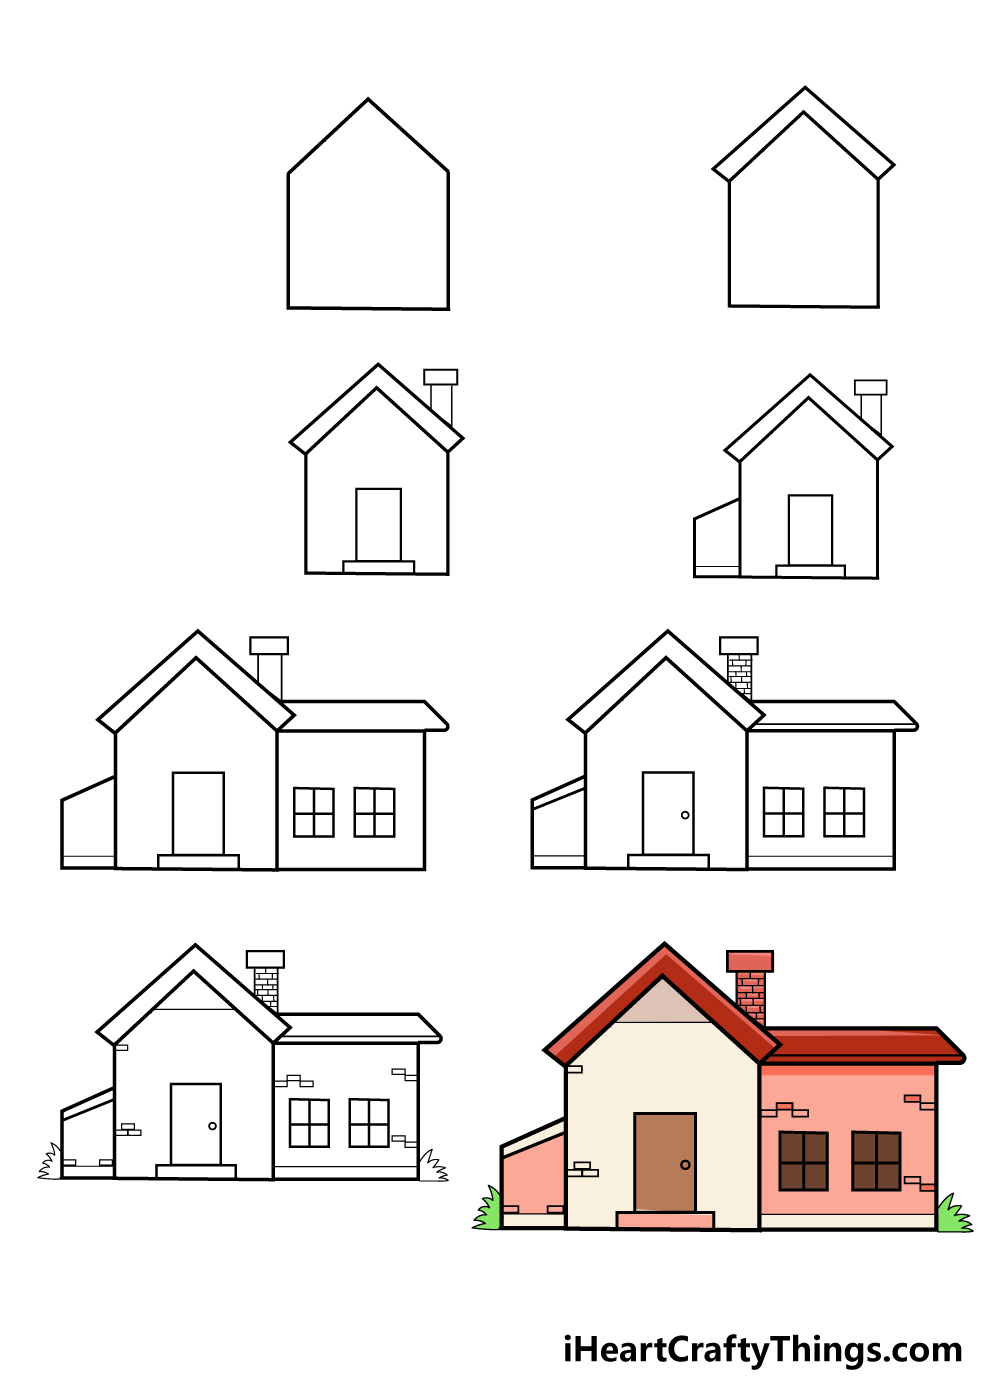 how to draw house in 8 steps